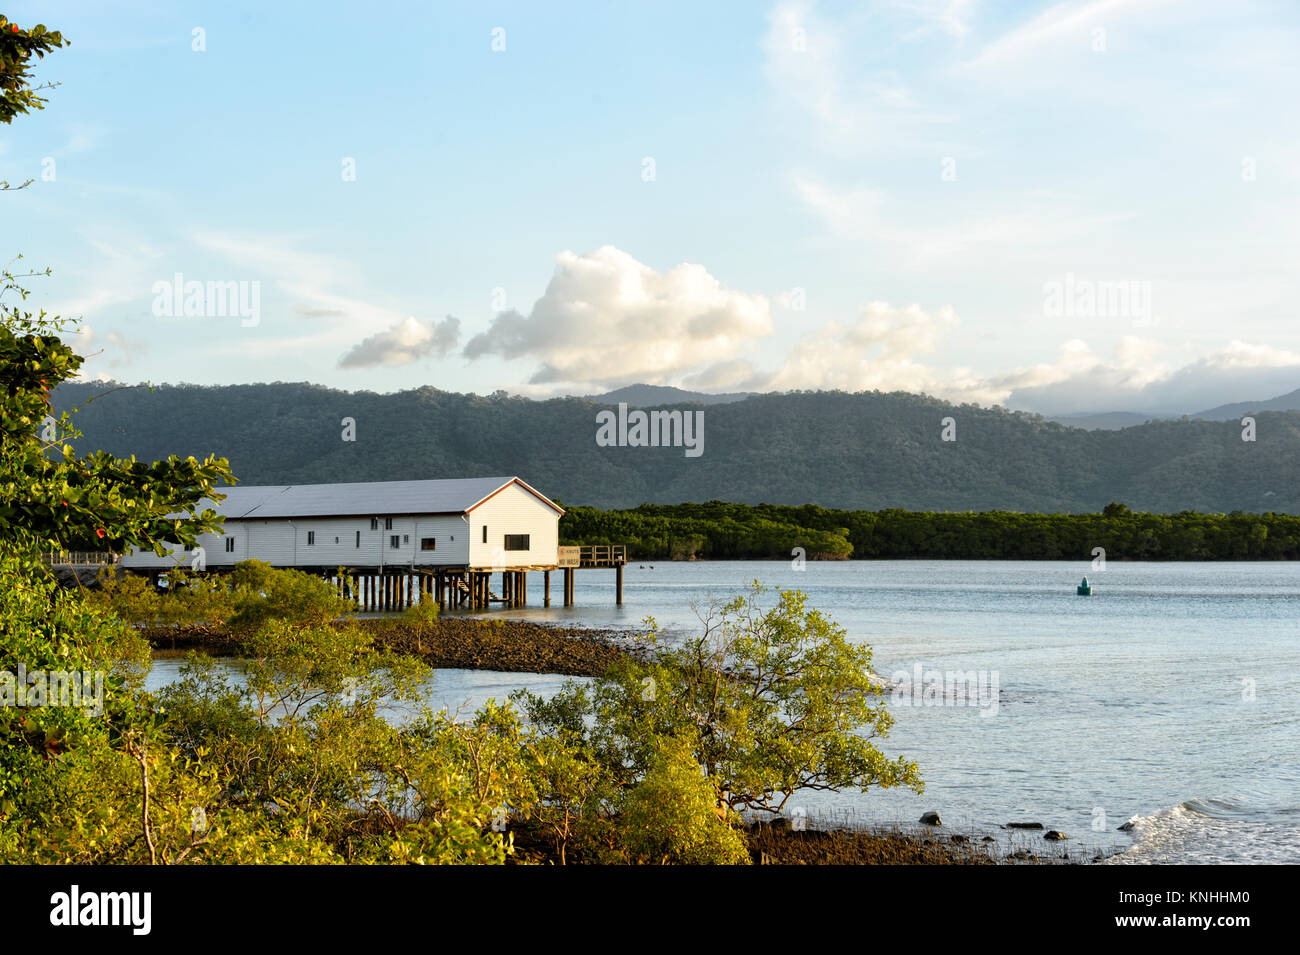 Historische Zucker Wharf, Dickson Einlass, Port Douglas, Far North Queensland, FNQ, QLD, Australien Stockbild